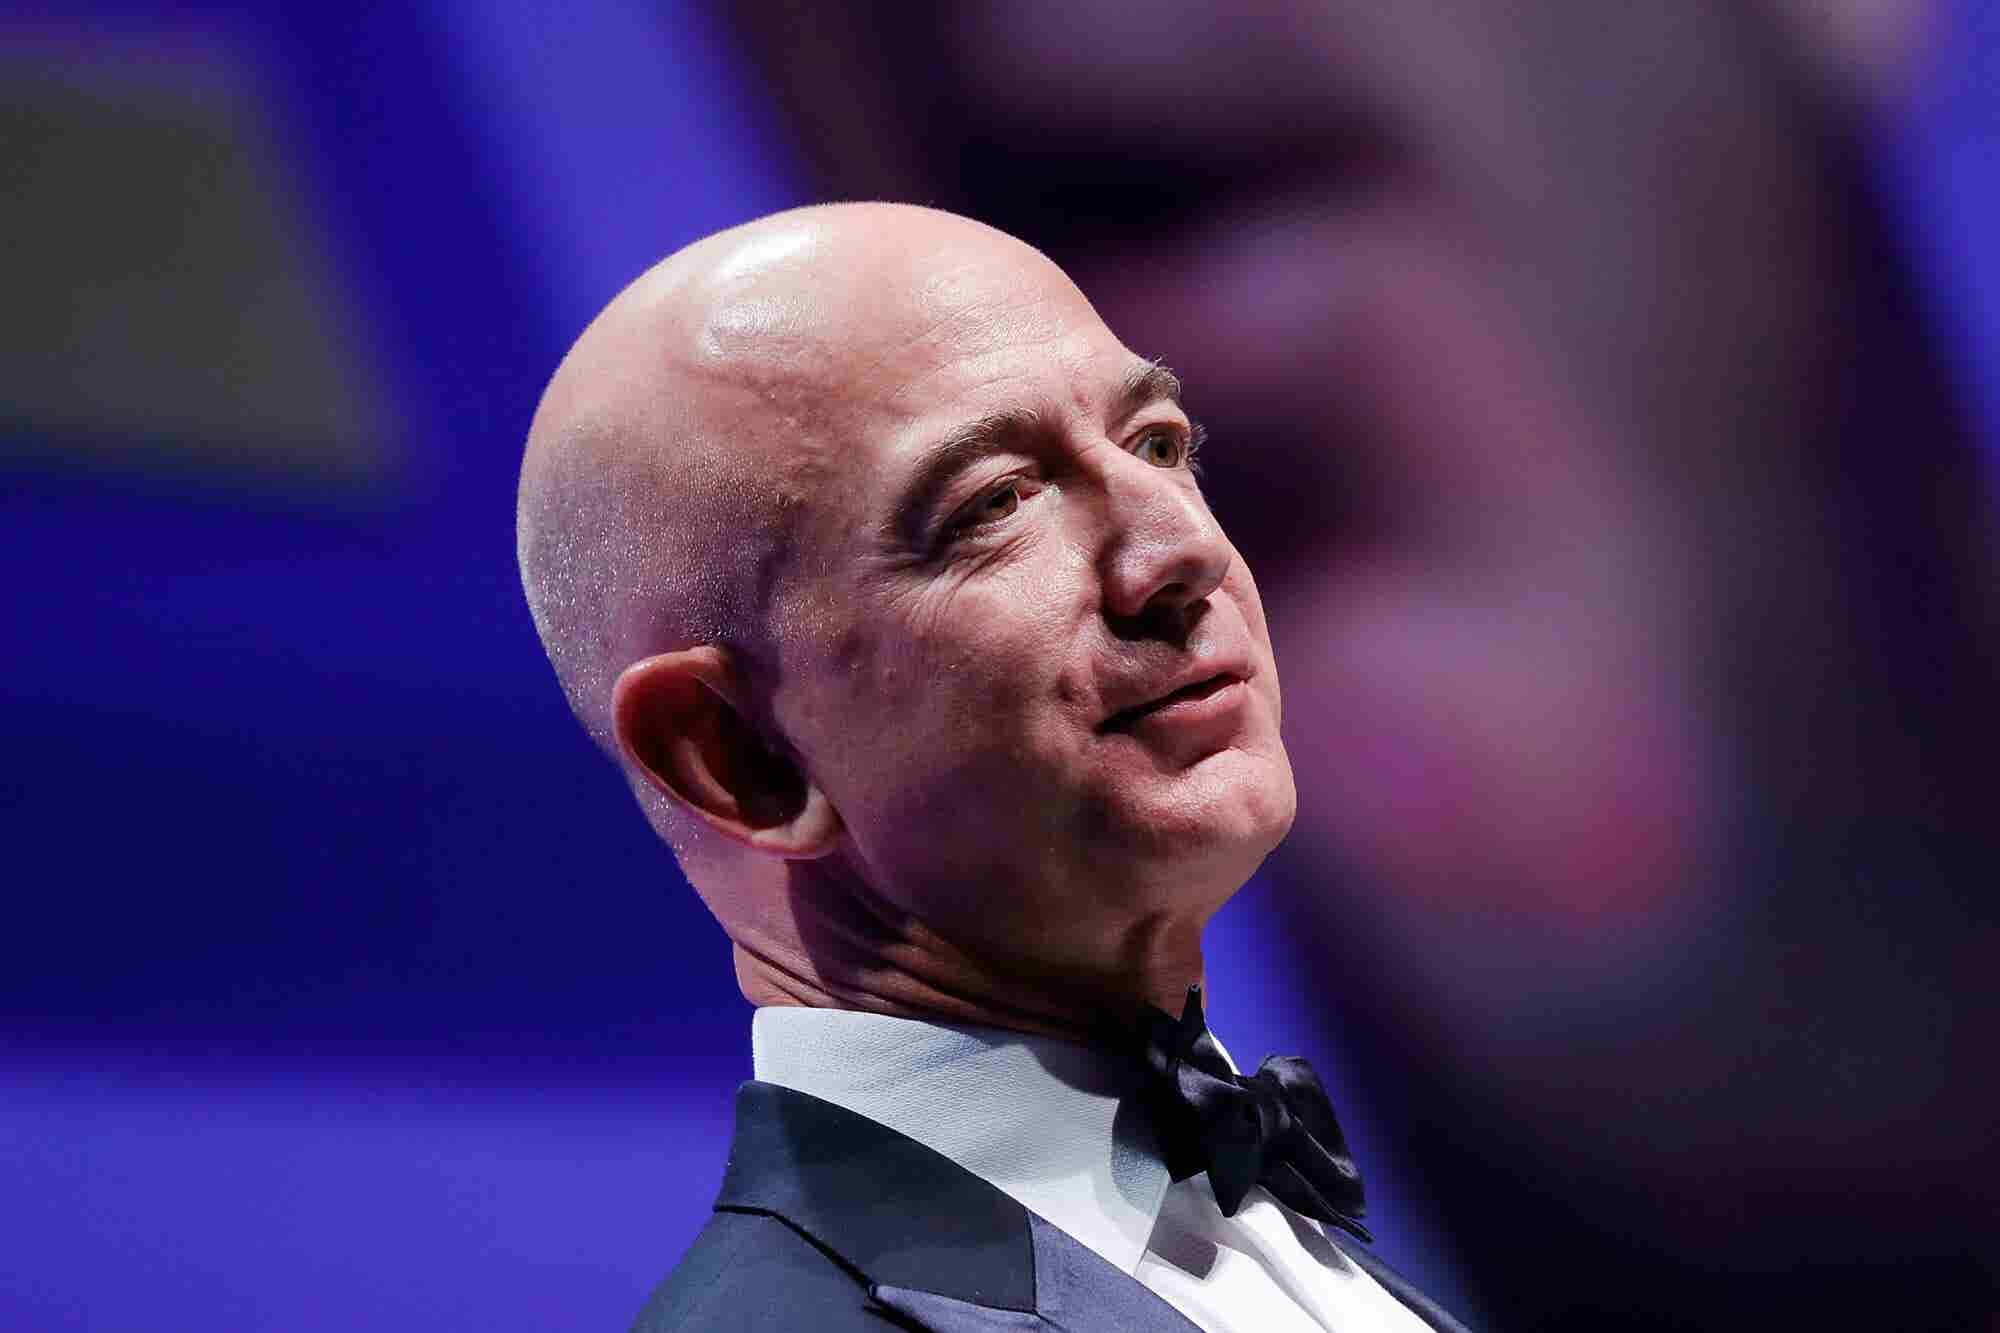 Jeff Bezos Starts a $2 Billion Fund for Schools and the Homeless